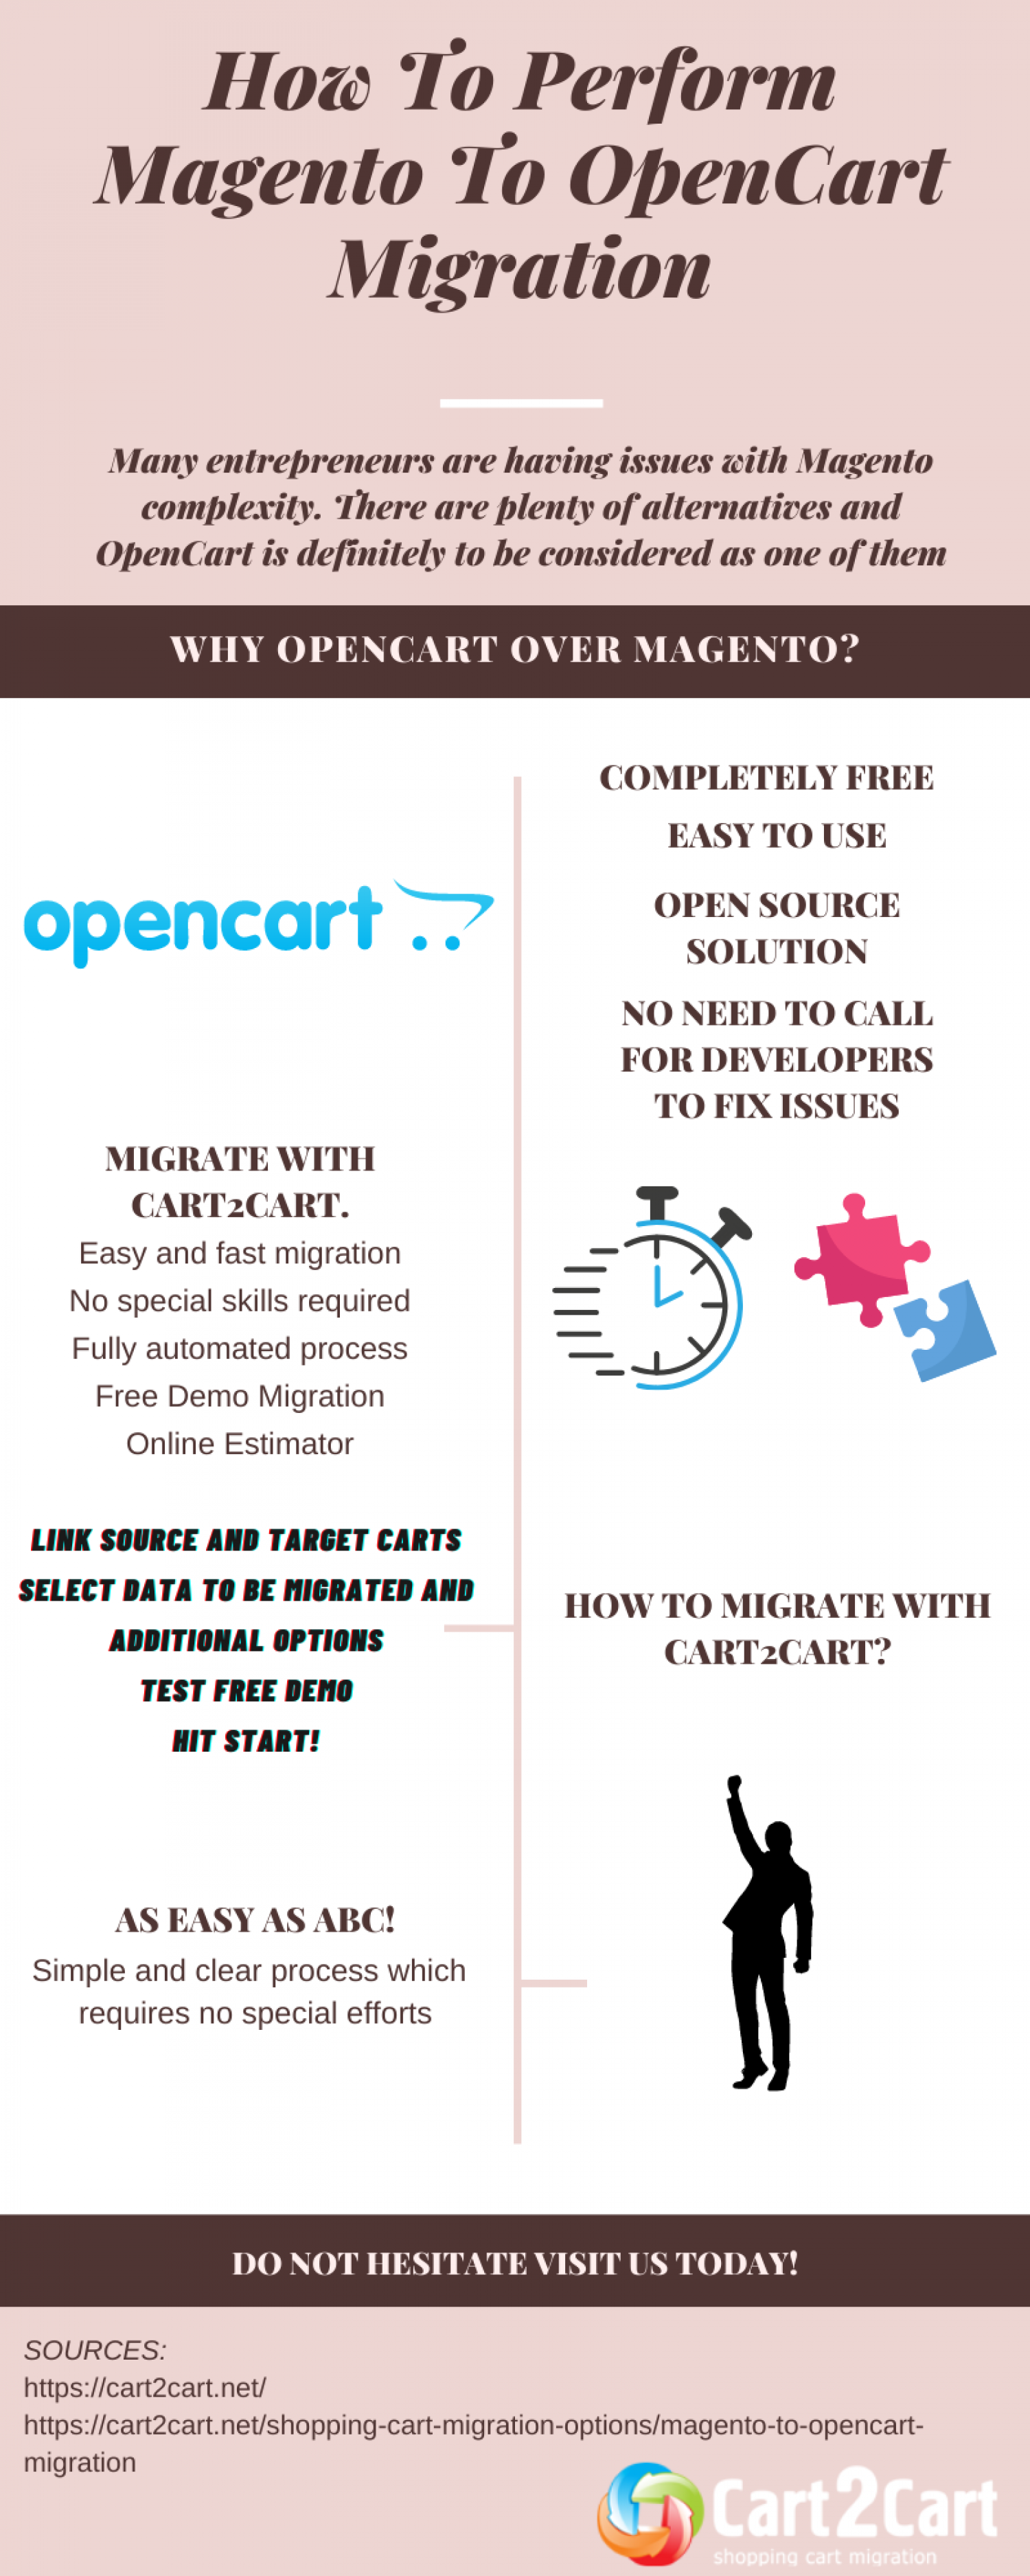 How To Perform Magento To OpenCart Migration Infographic